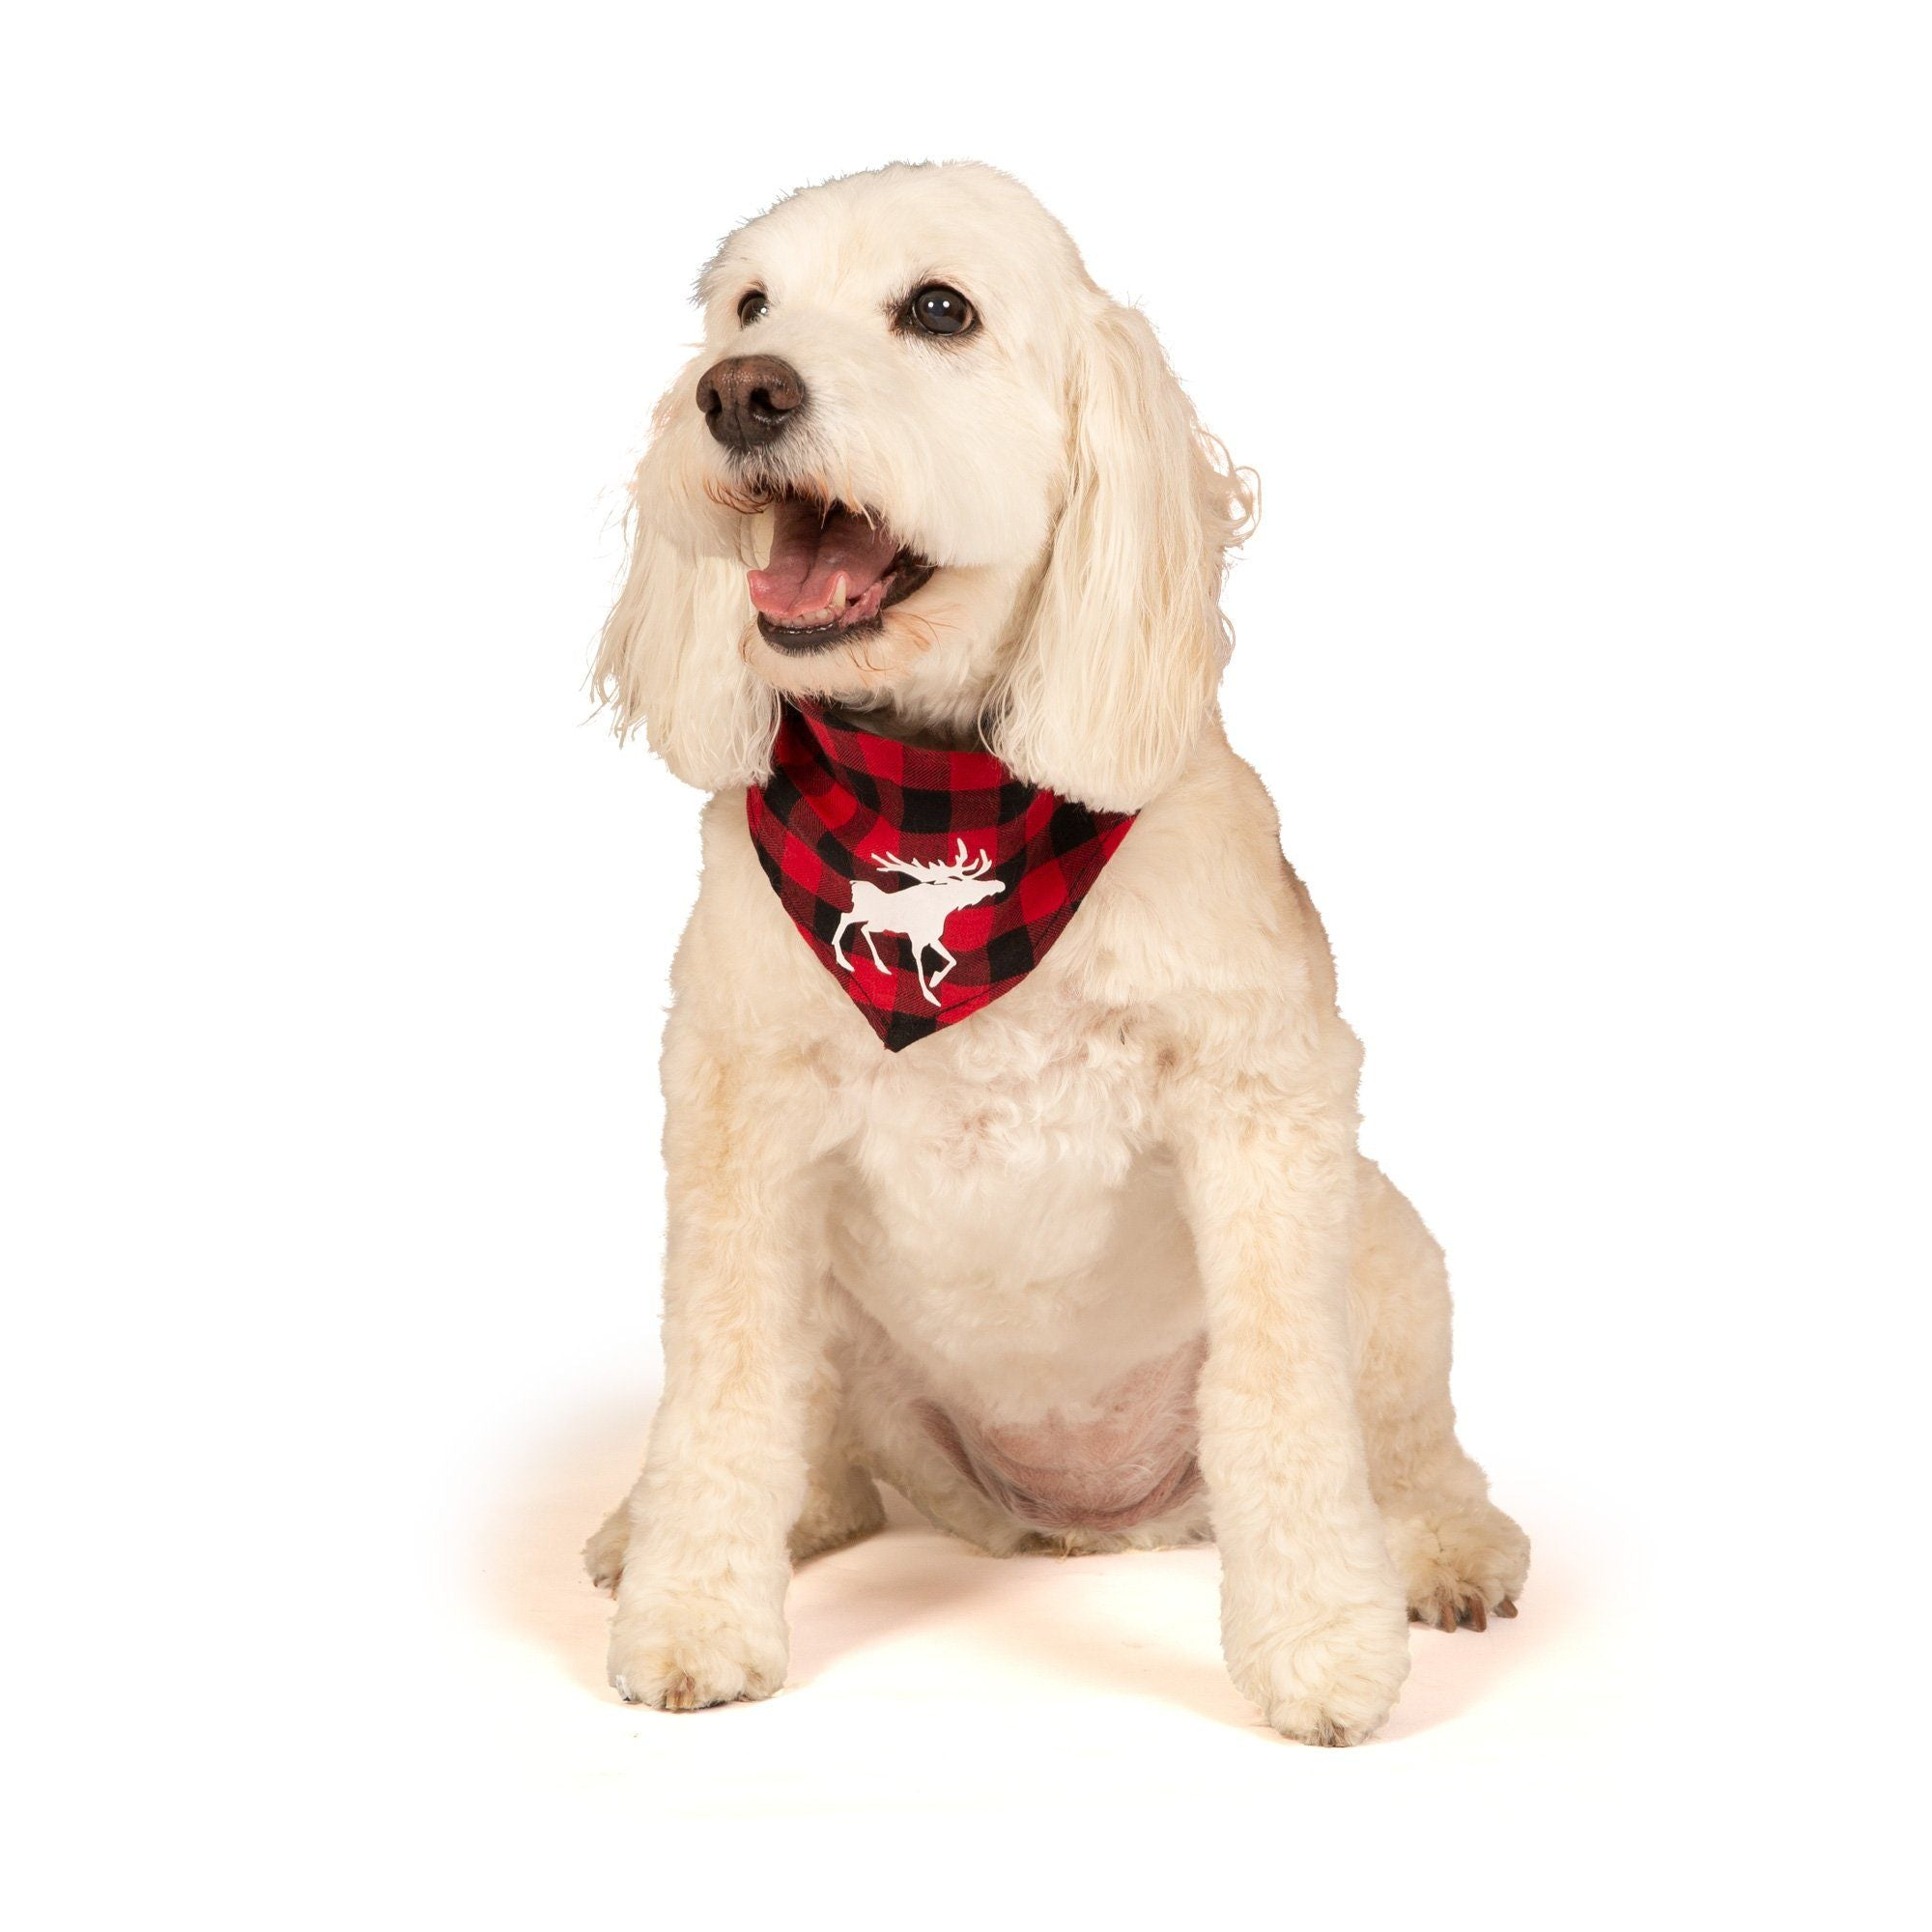 red and black plaid bandana for dogs matches family pjs